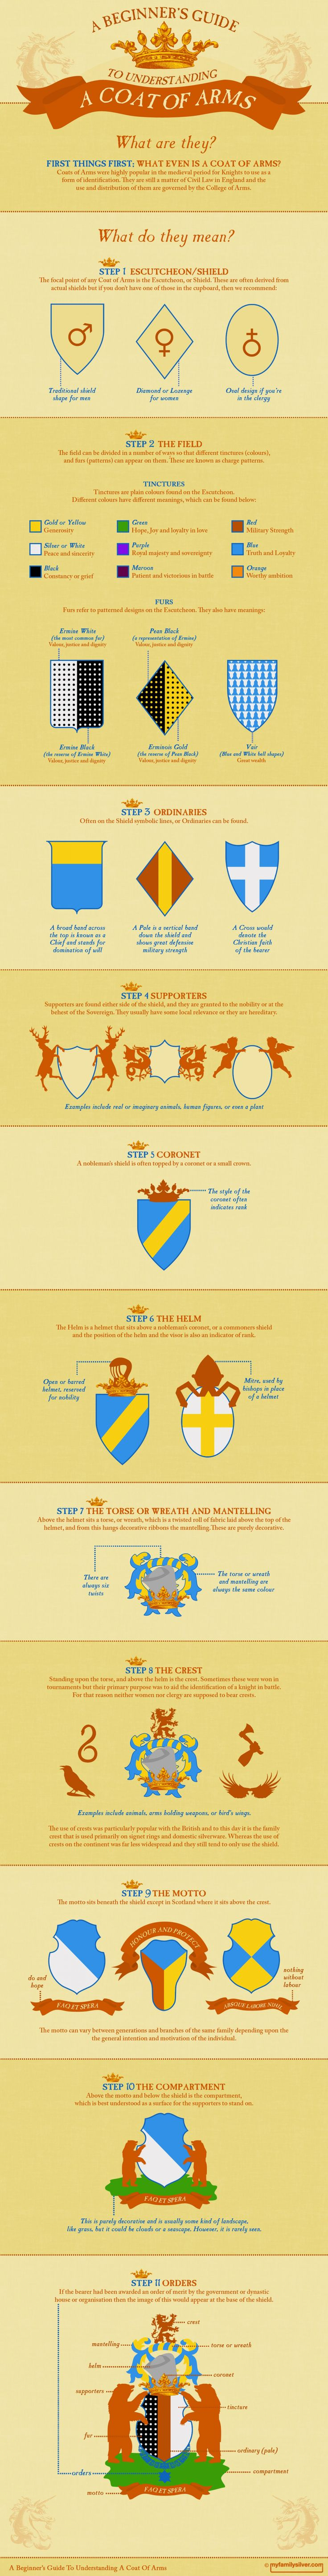 Beginner's Guide to Understanding A Coat of Arms